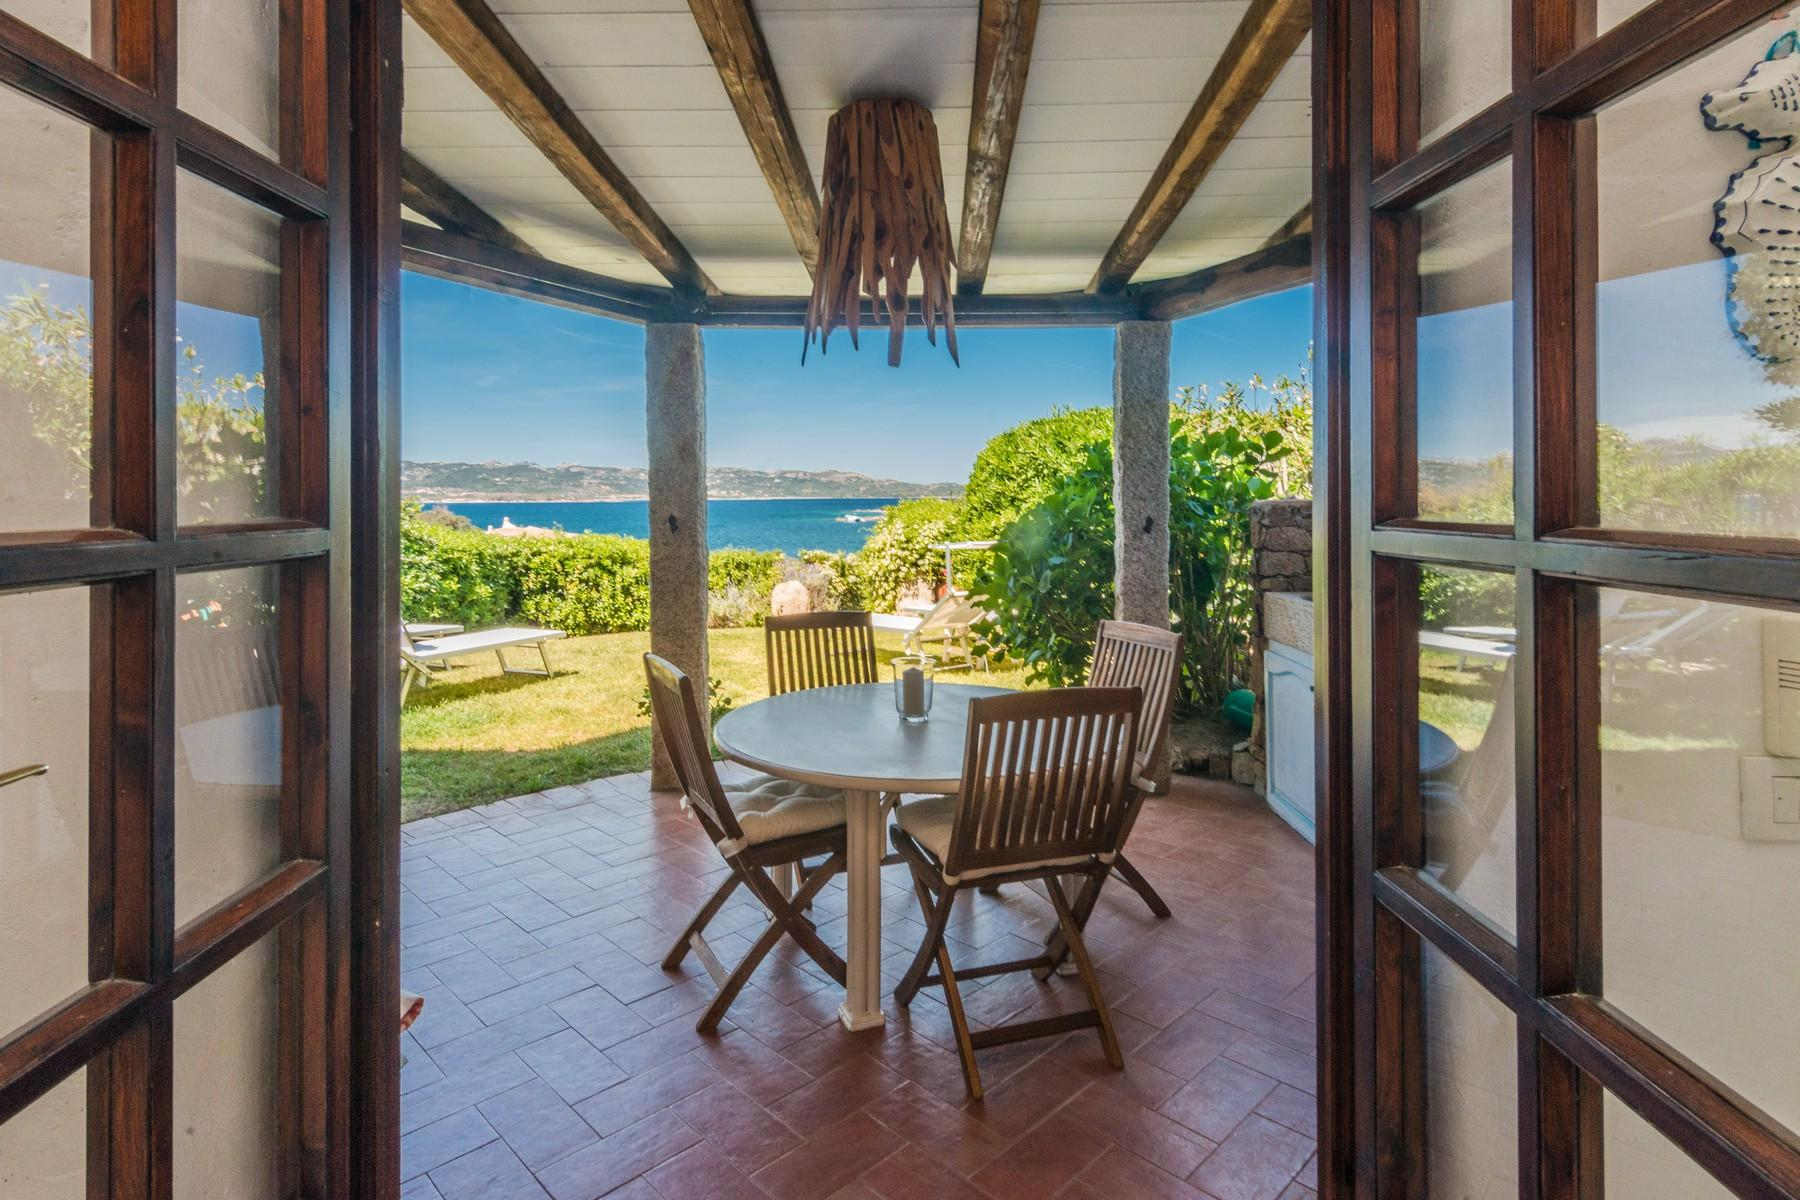 Baja Sardinia Mucchi Bianchi Delightful house with sea views - 5